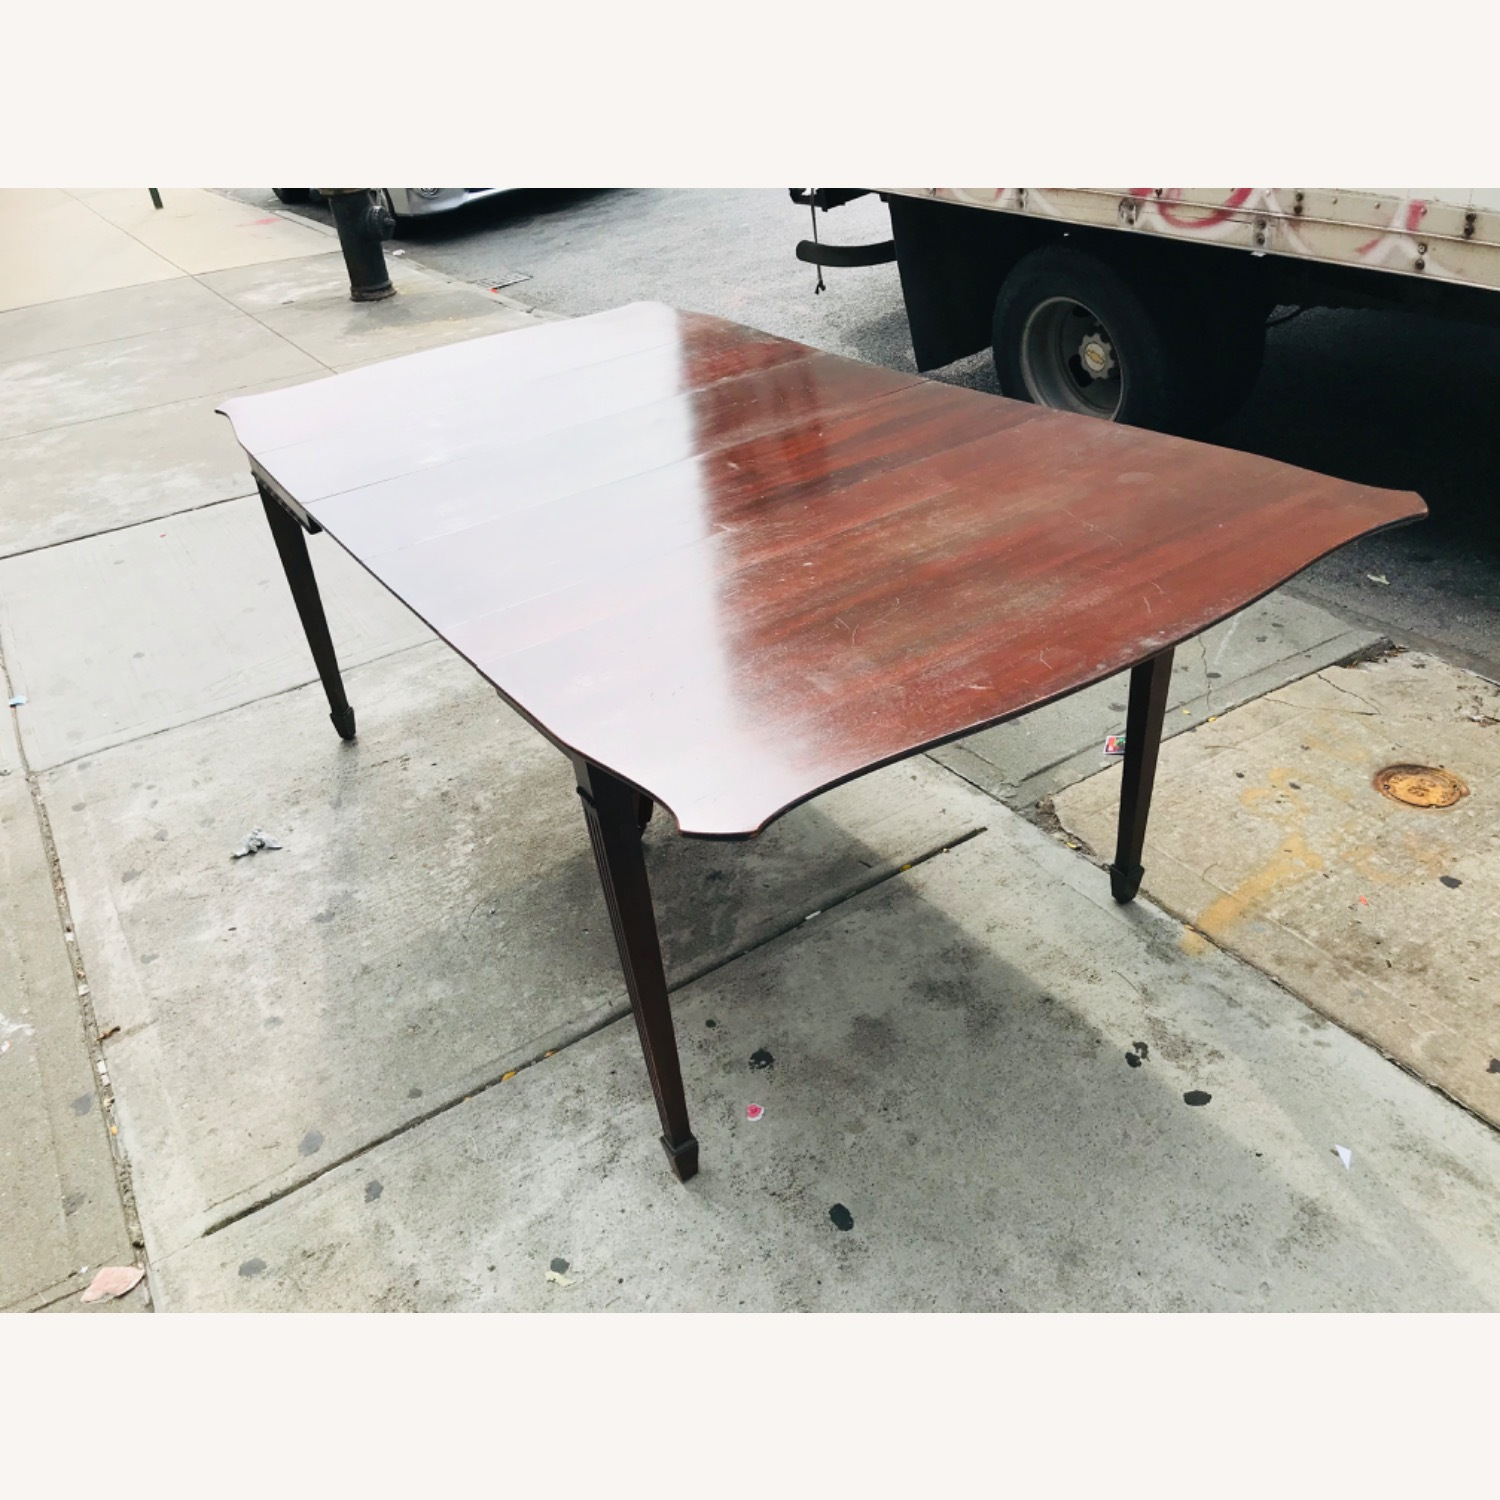 Antique 1920s Mahogany Table w/3 Leaves  - image-23